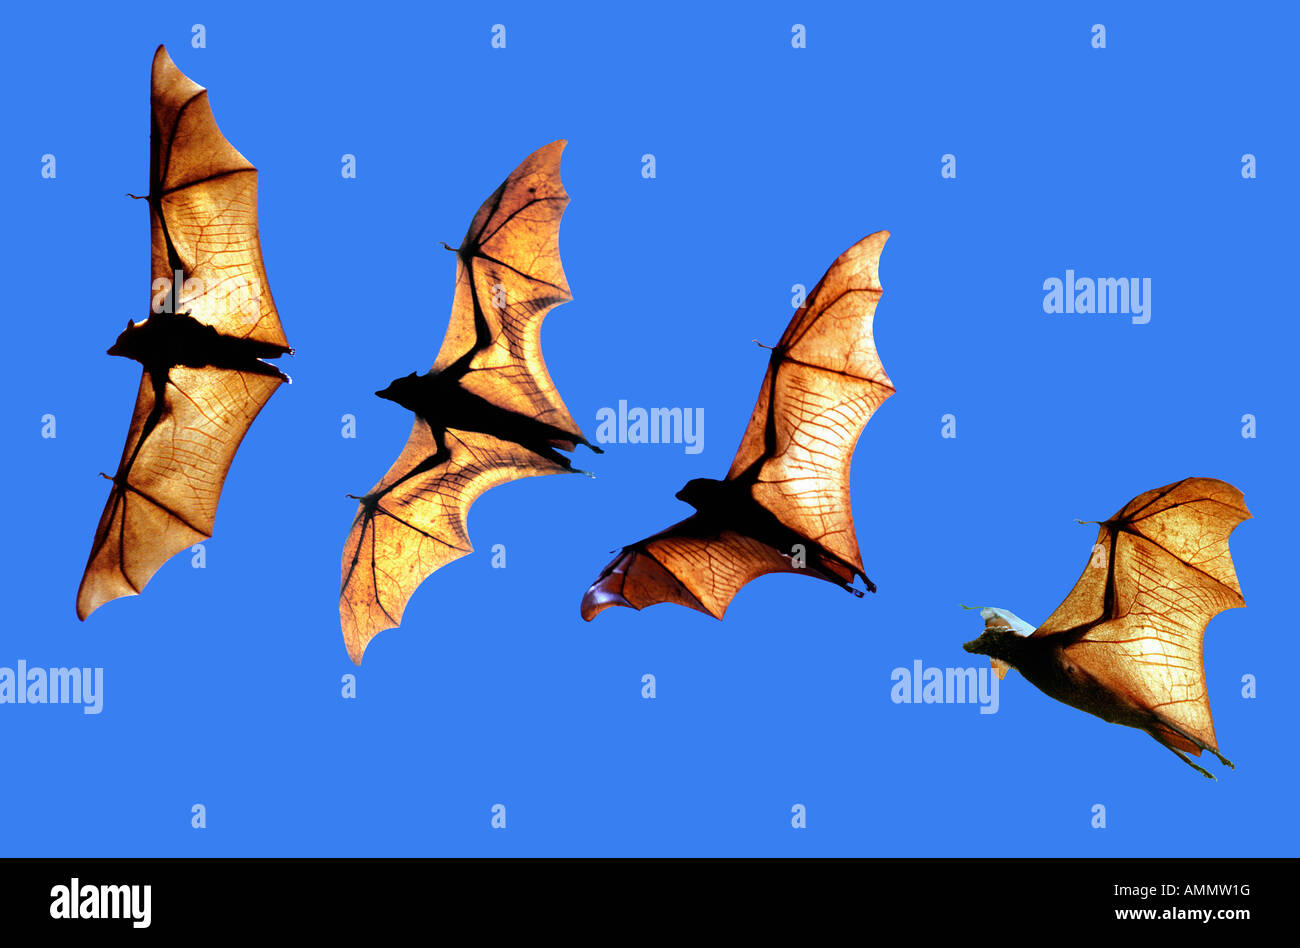 Roussette Pteropus vampyrus d Indonesie Grande renards volants Bornéo Indonésie Indonésie Asie animal Photo Stock